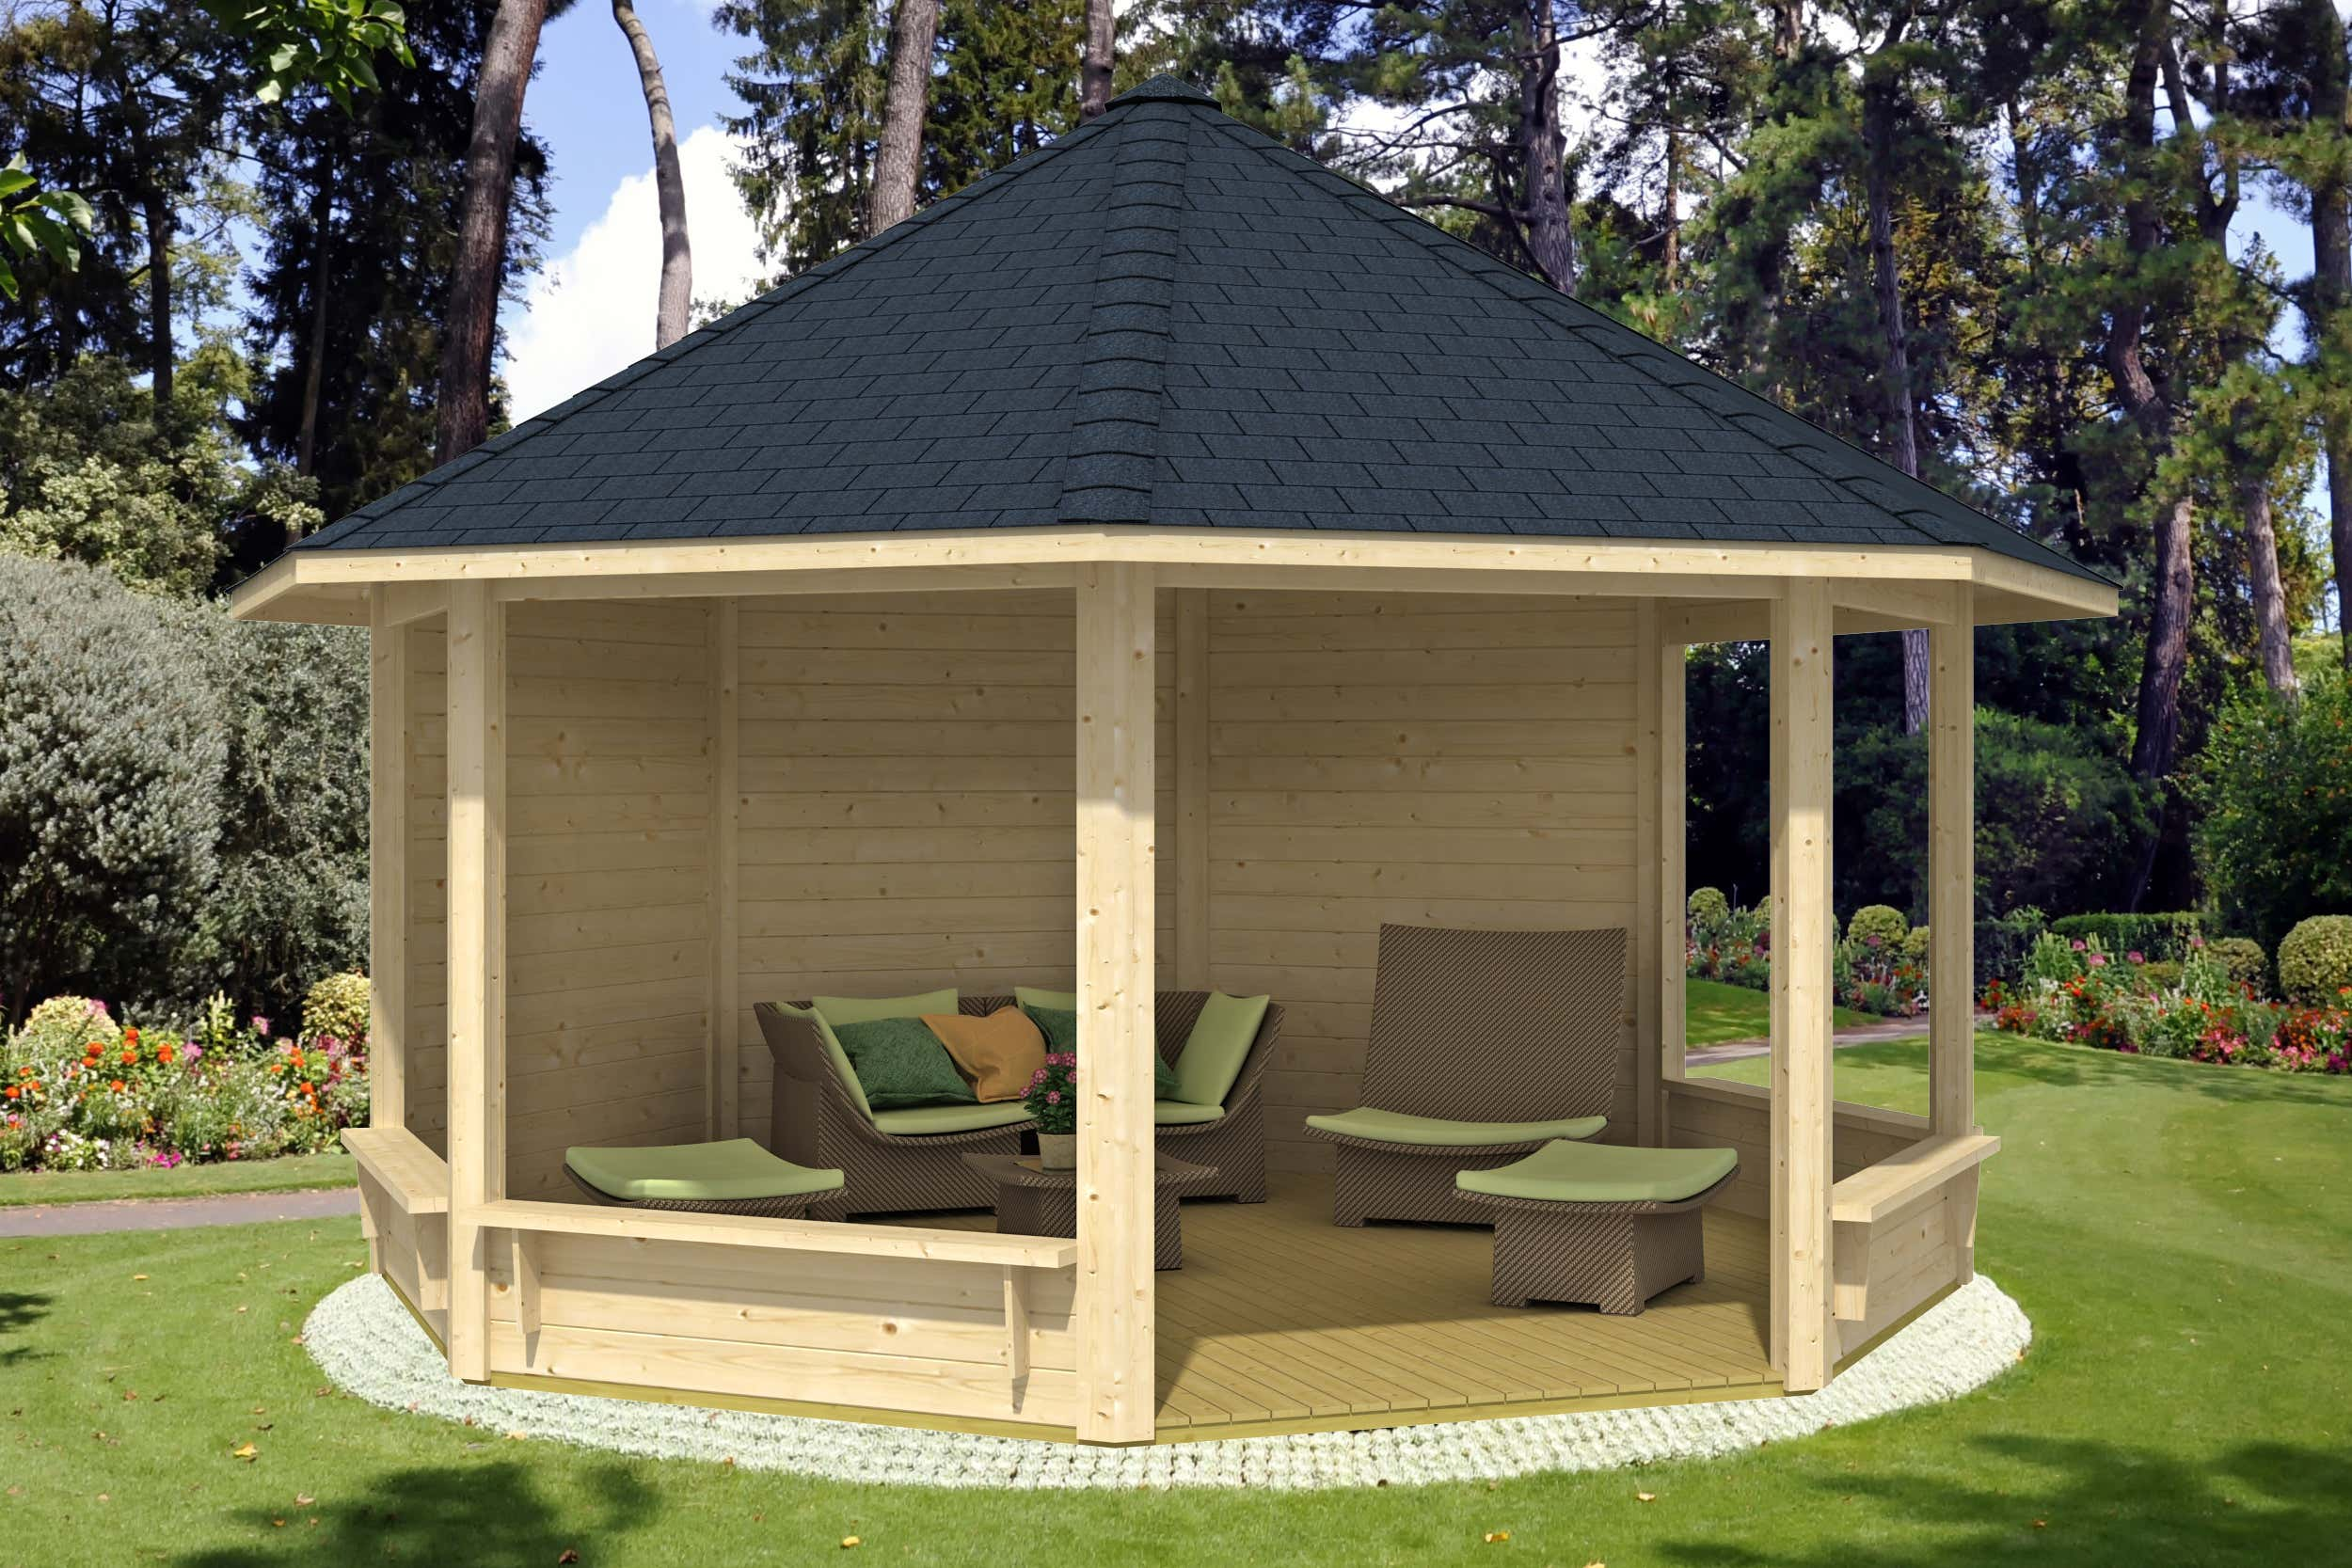 gartenpavillon modell pellworm a z gartenhaus gmbh. Black Bedroom Furniture Sets. Home Design Ideas